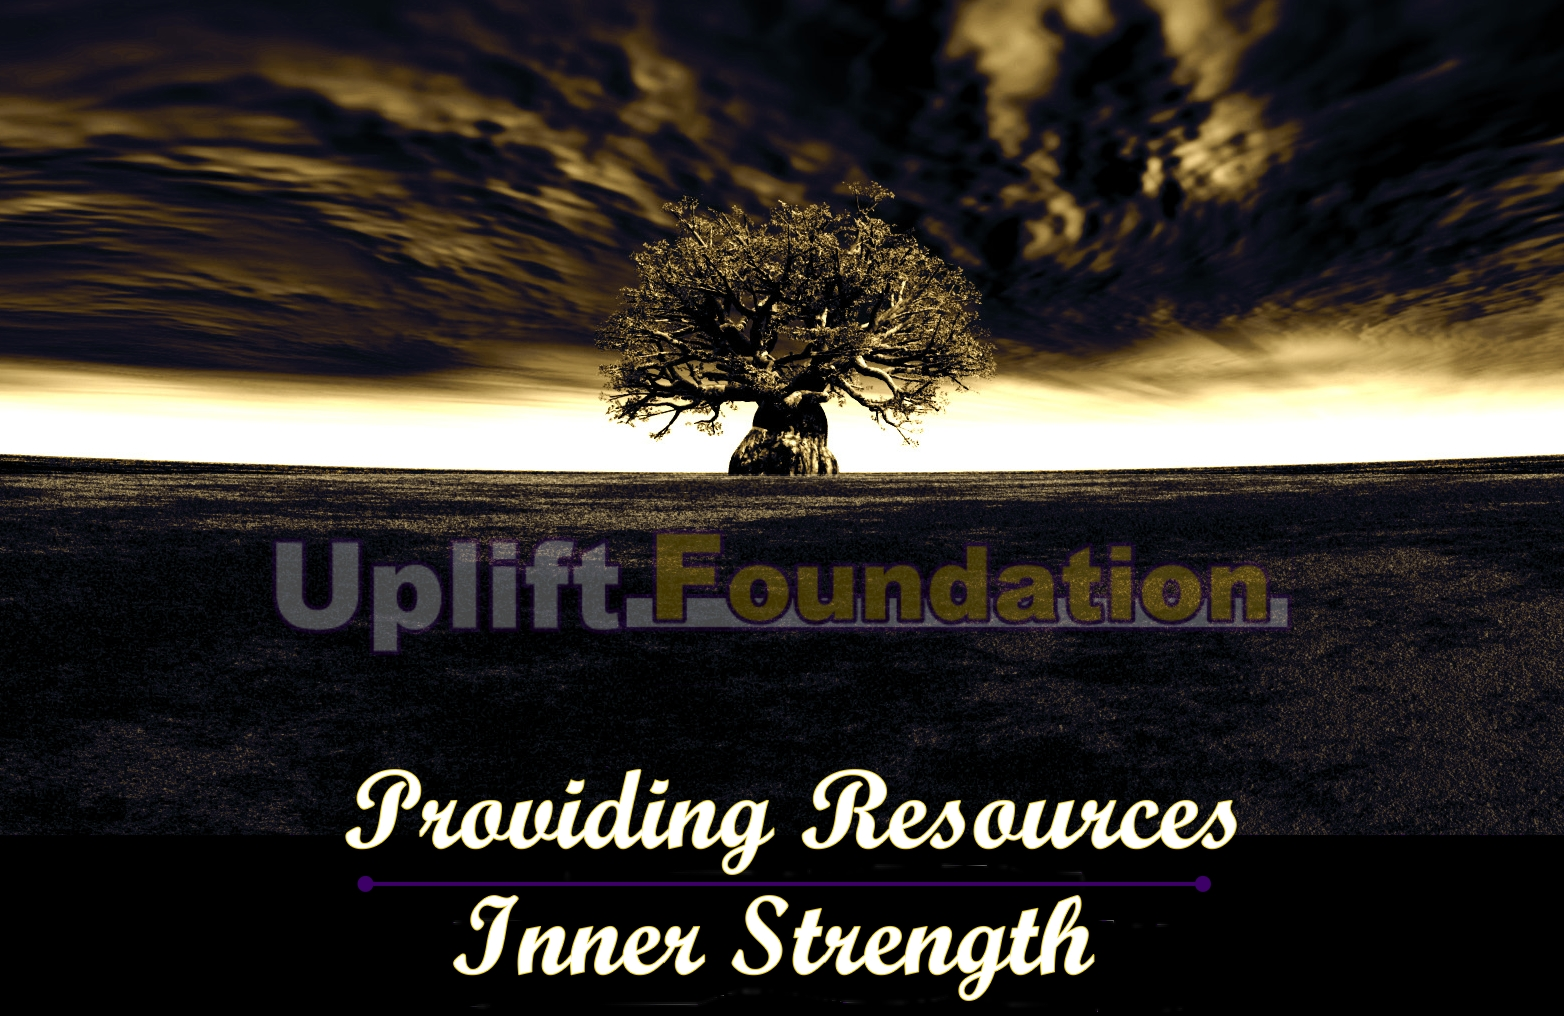 Resources to Inner Strength